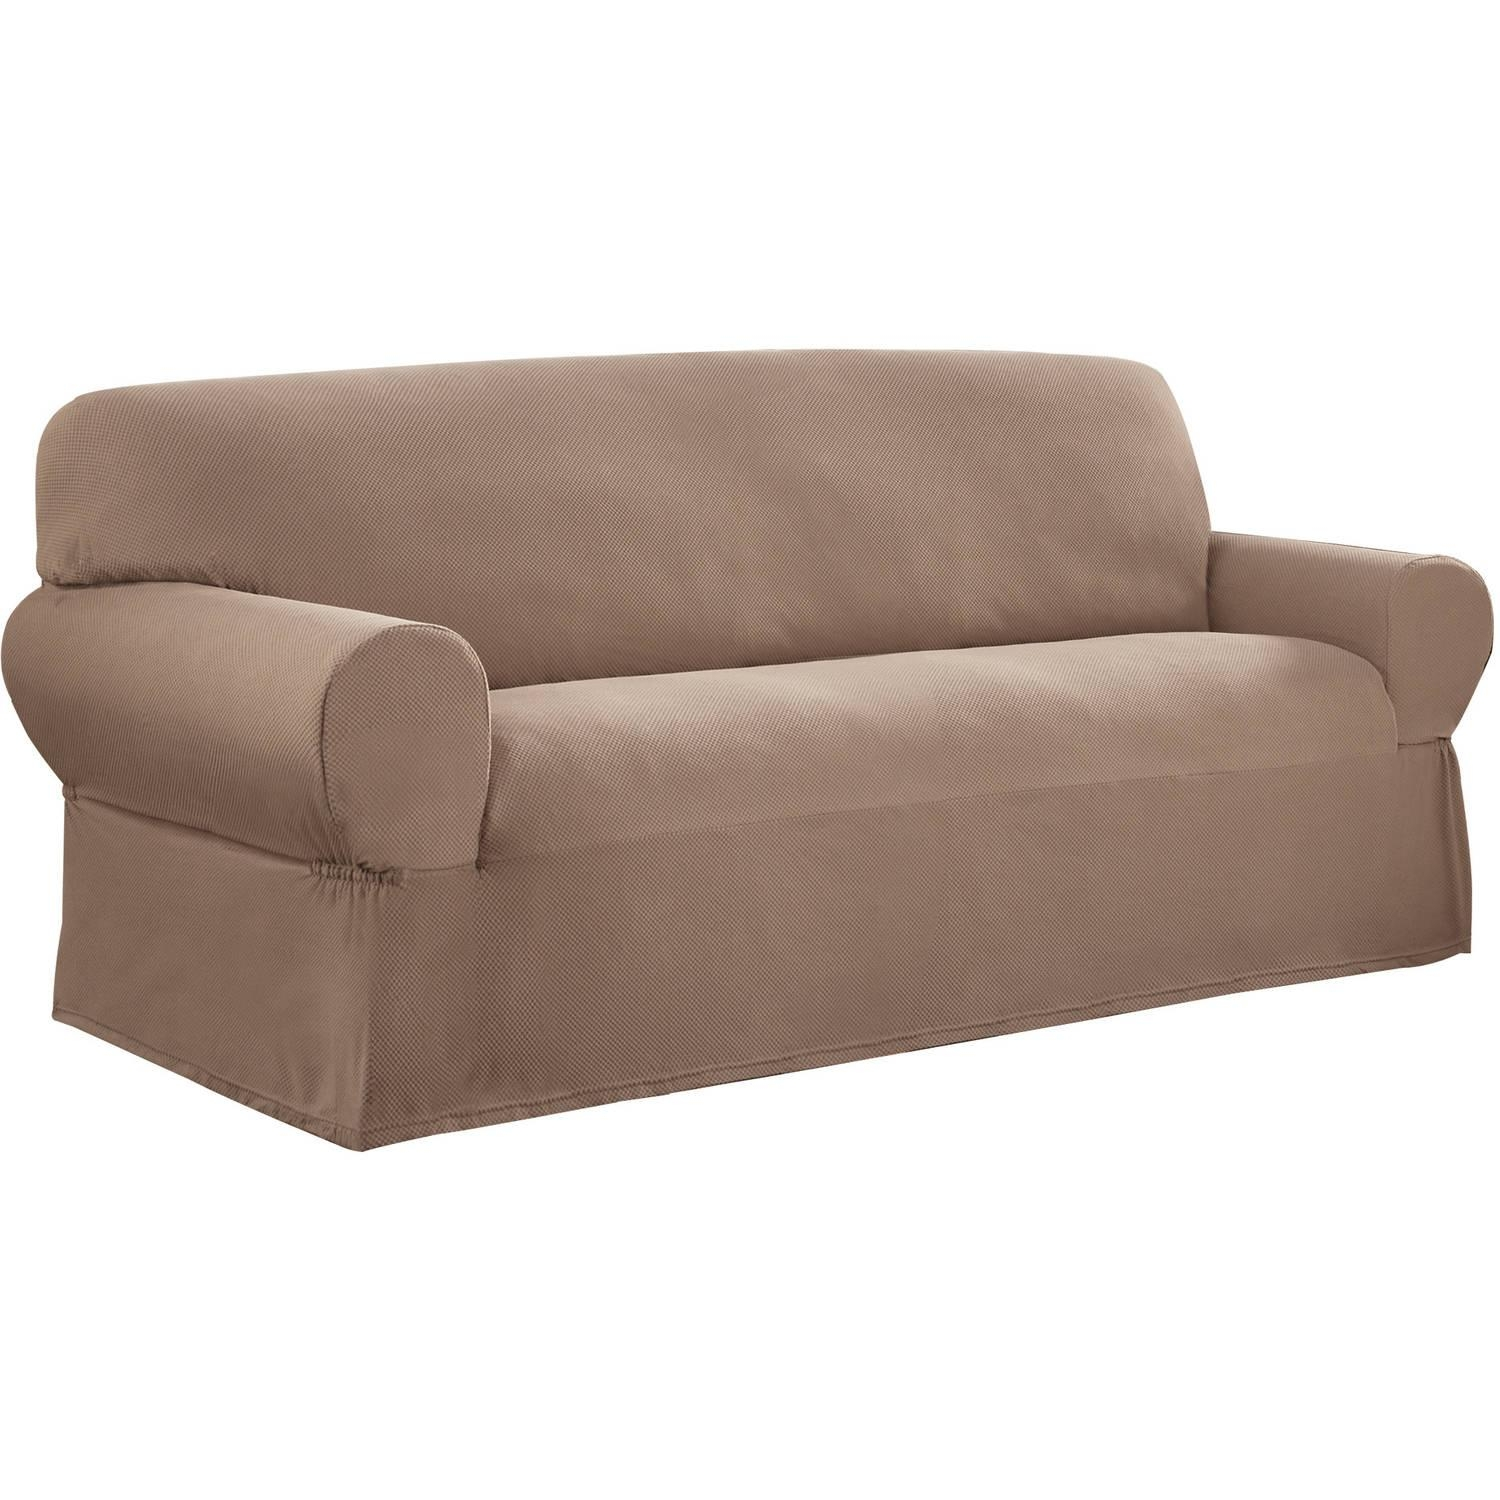 Slipcovers – Walmart Inside Covers For Sofas And Chairs (View 15 of 20)